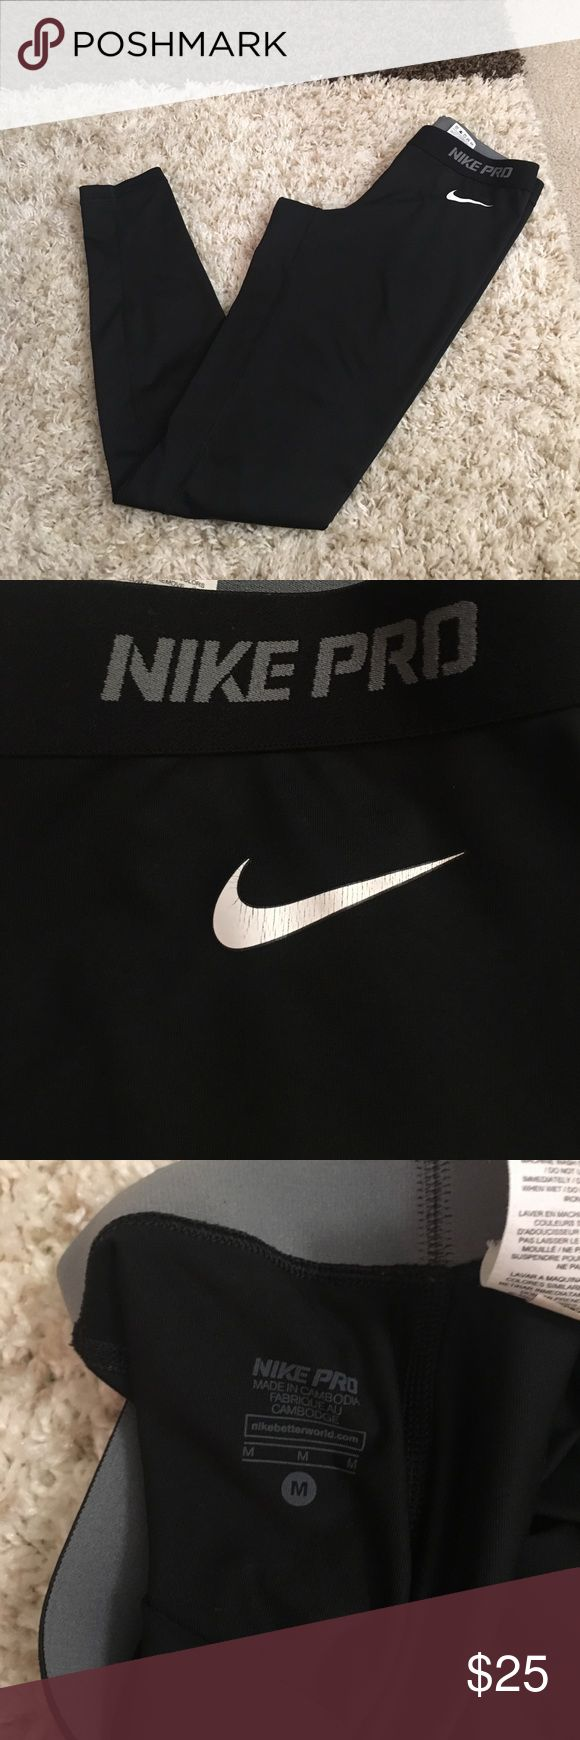 Woman's Nike Pro training pants Used. Good condition. Woman's Nike Pro dri-fit training pants. No trades. No 🅿🅿. Please comment for questions. Use the offer button to make an offer. Thanks! Nike Pants Leggings